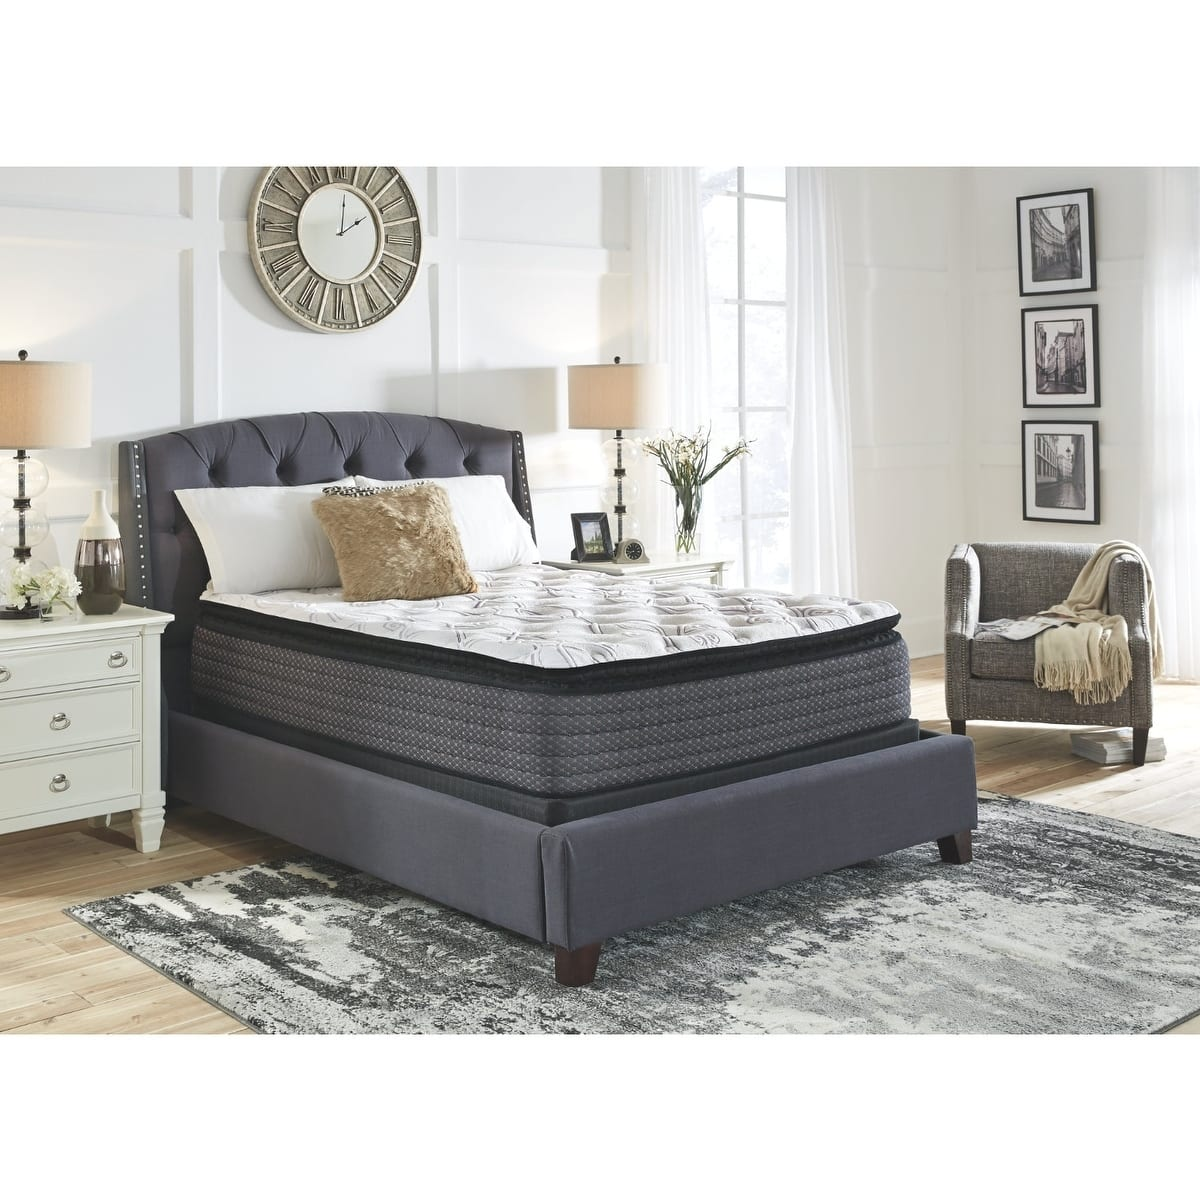 Ashley Furniture Brands: Buy Mattresses By Size, Type, Brands Online At Overstock